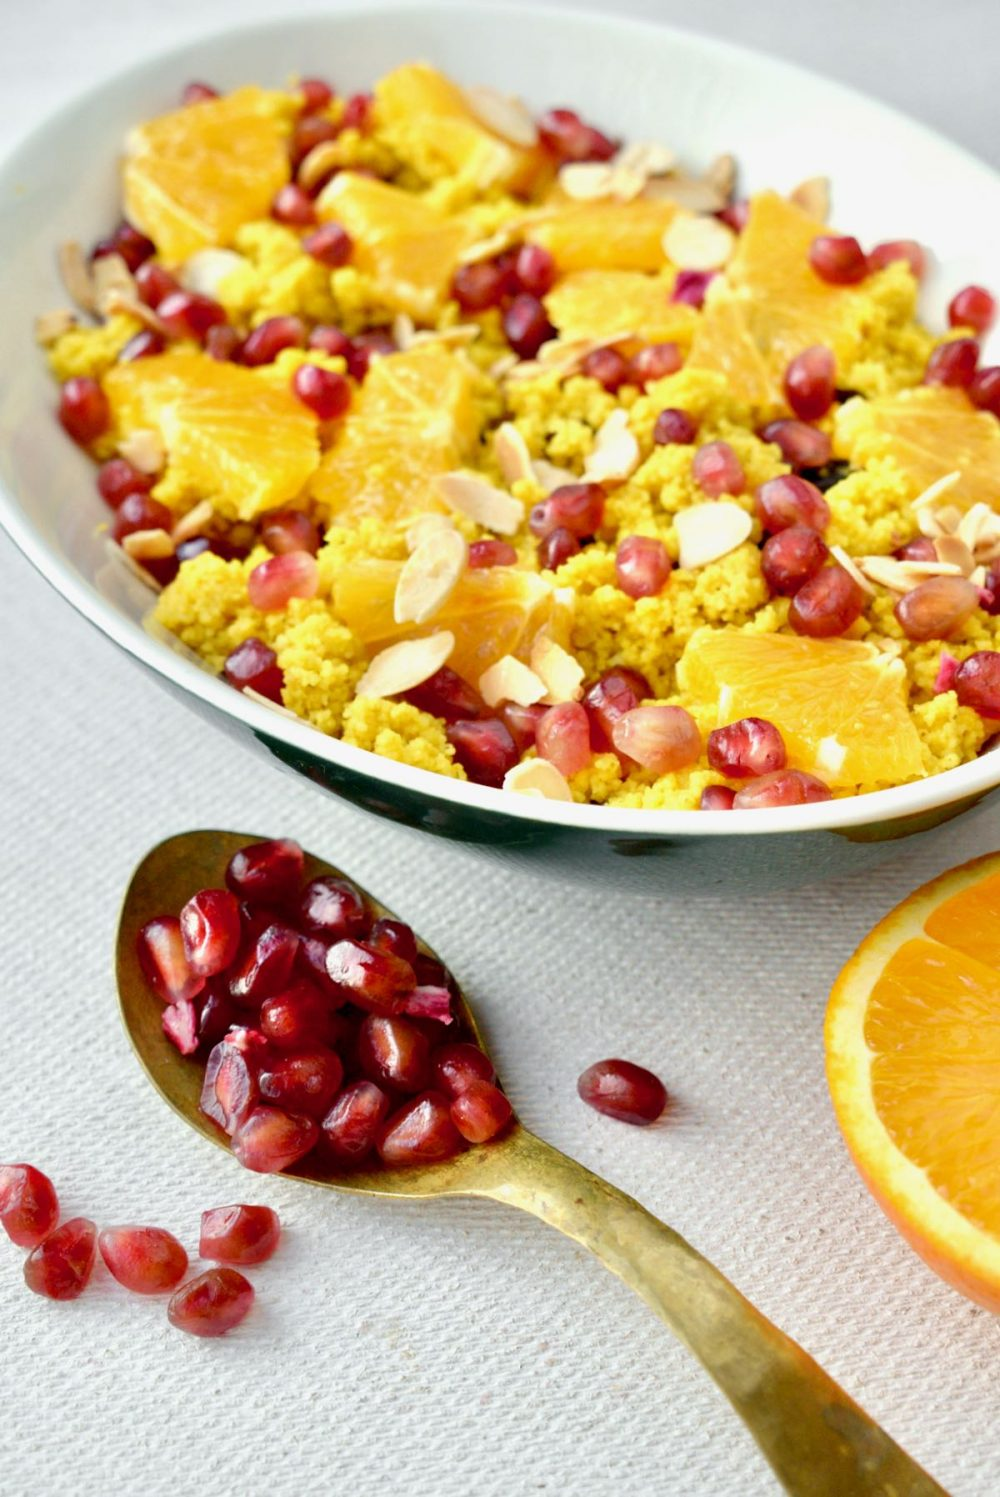 Bright sunshine coloured couscous covered in orange pieces, red pomegranate arils and toasted nuts